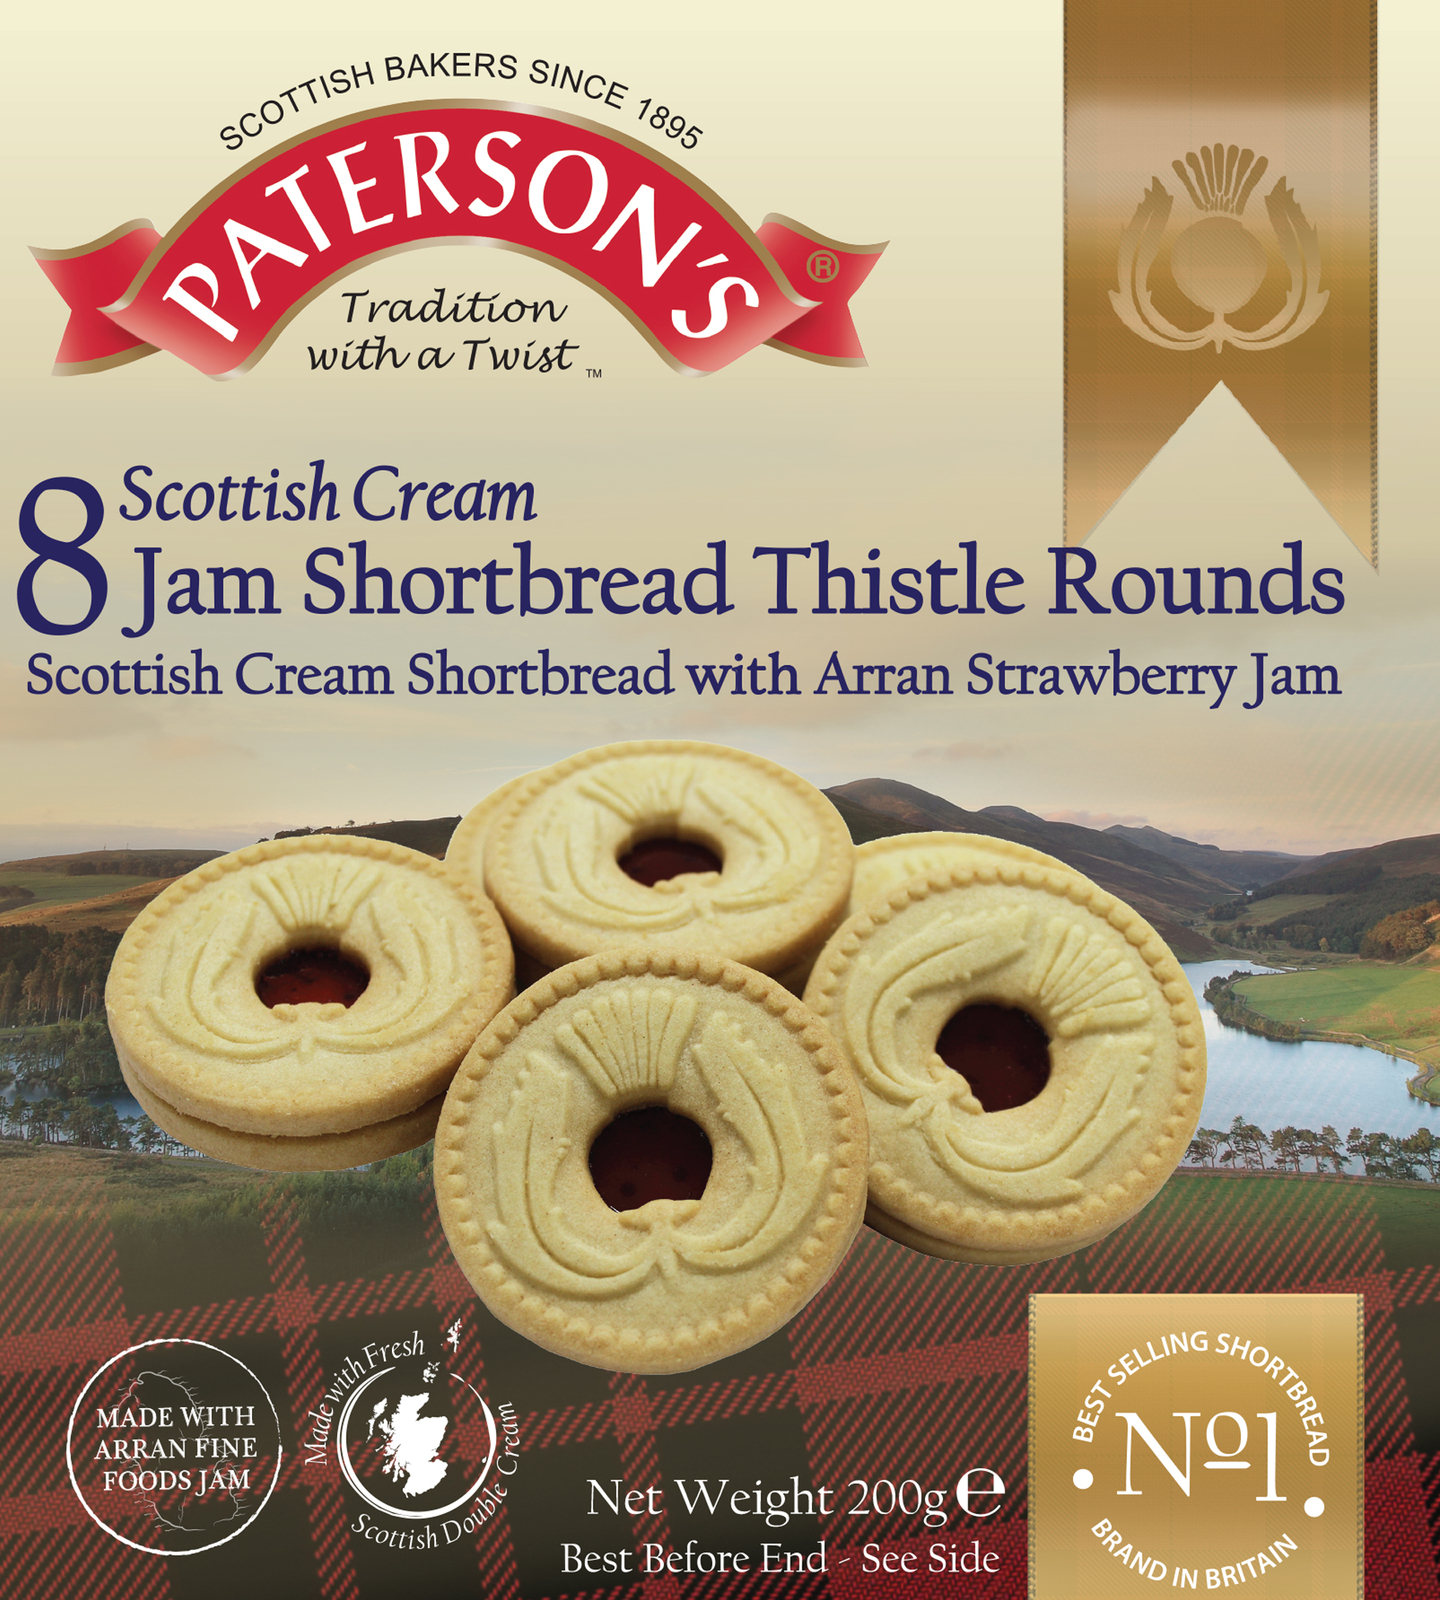 Patersons Scottish Cream Jammy Shortbread 200g image